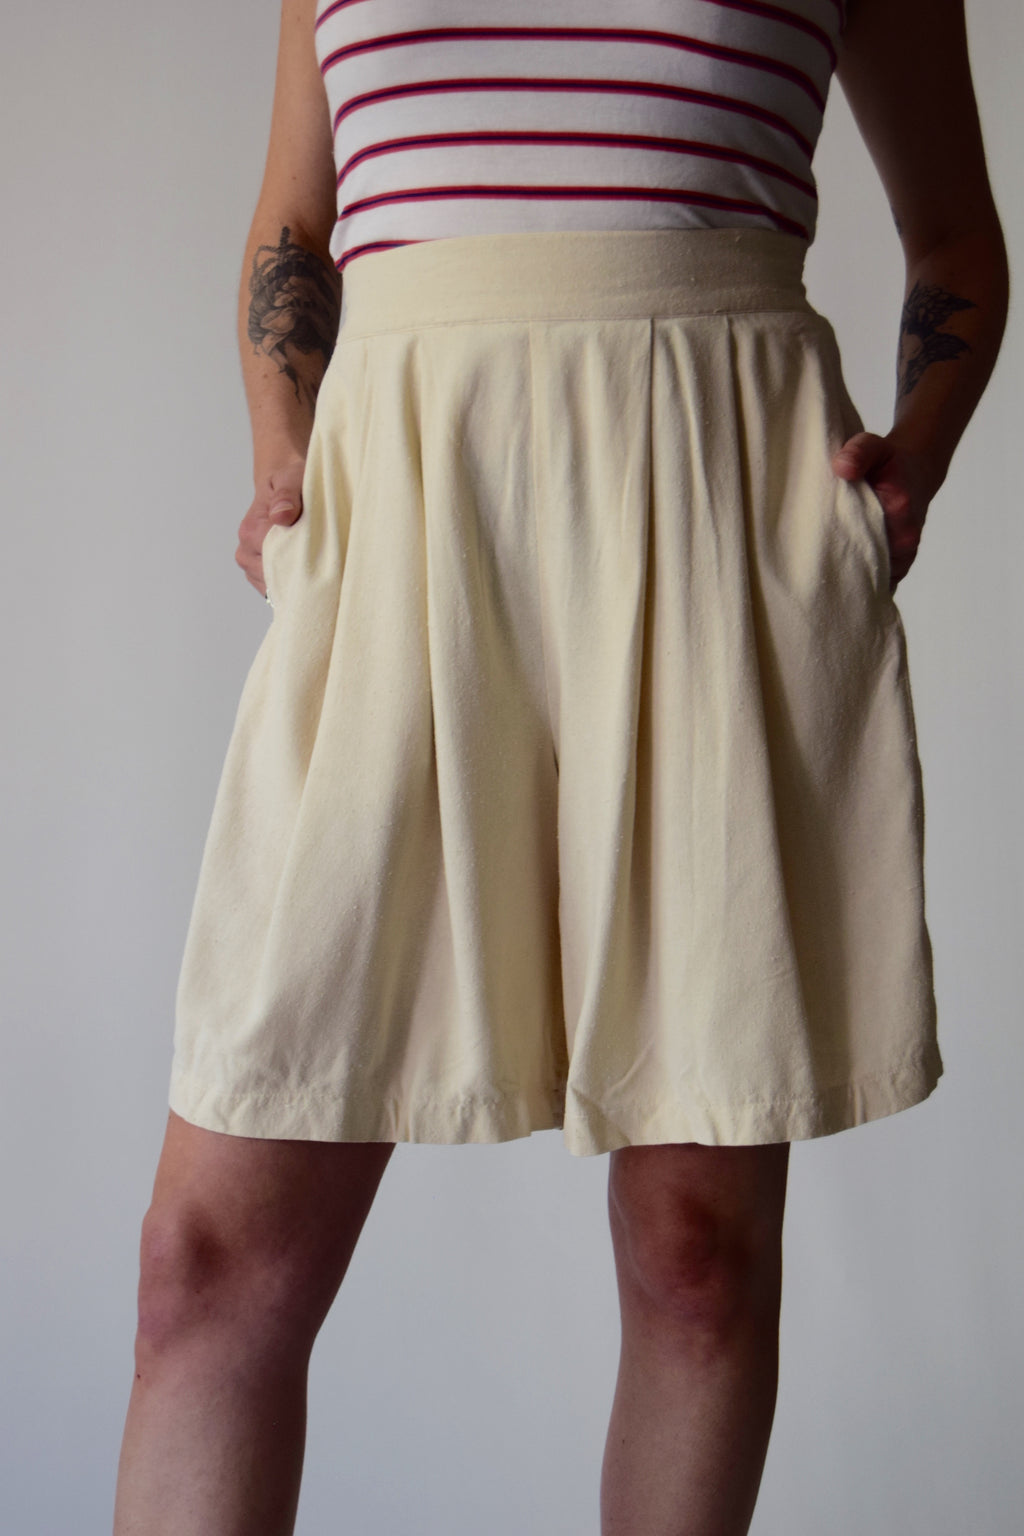 Ivory Silk High Waisted Shorts FREE SHIPPING TO THE U.S.